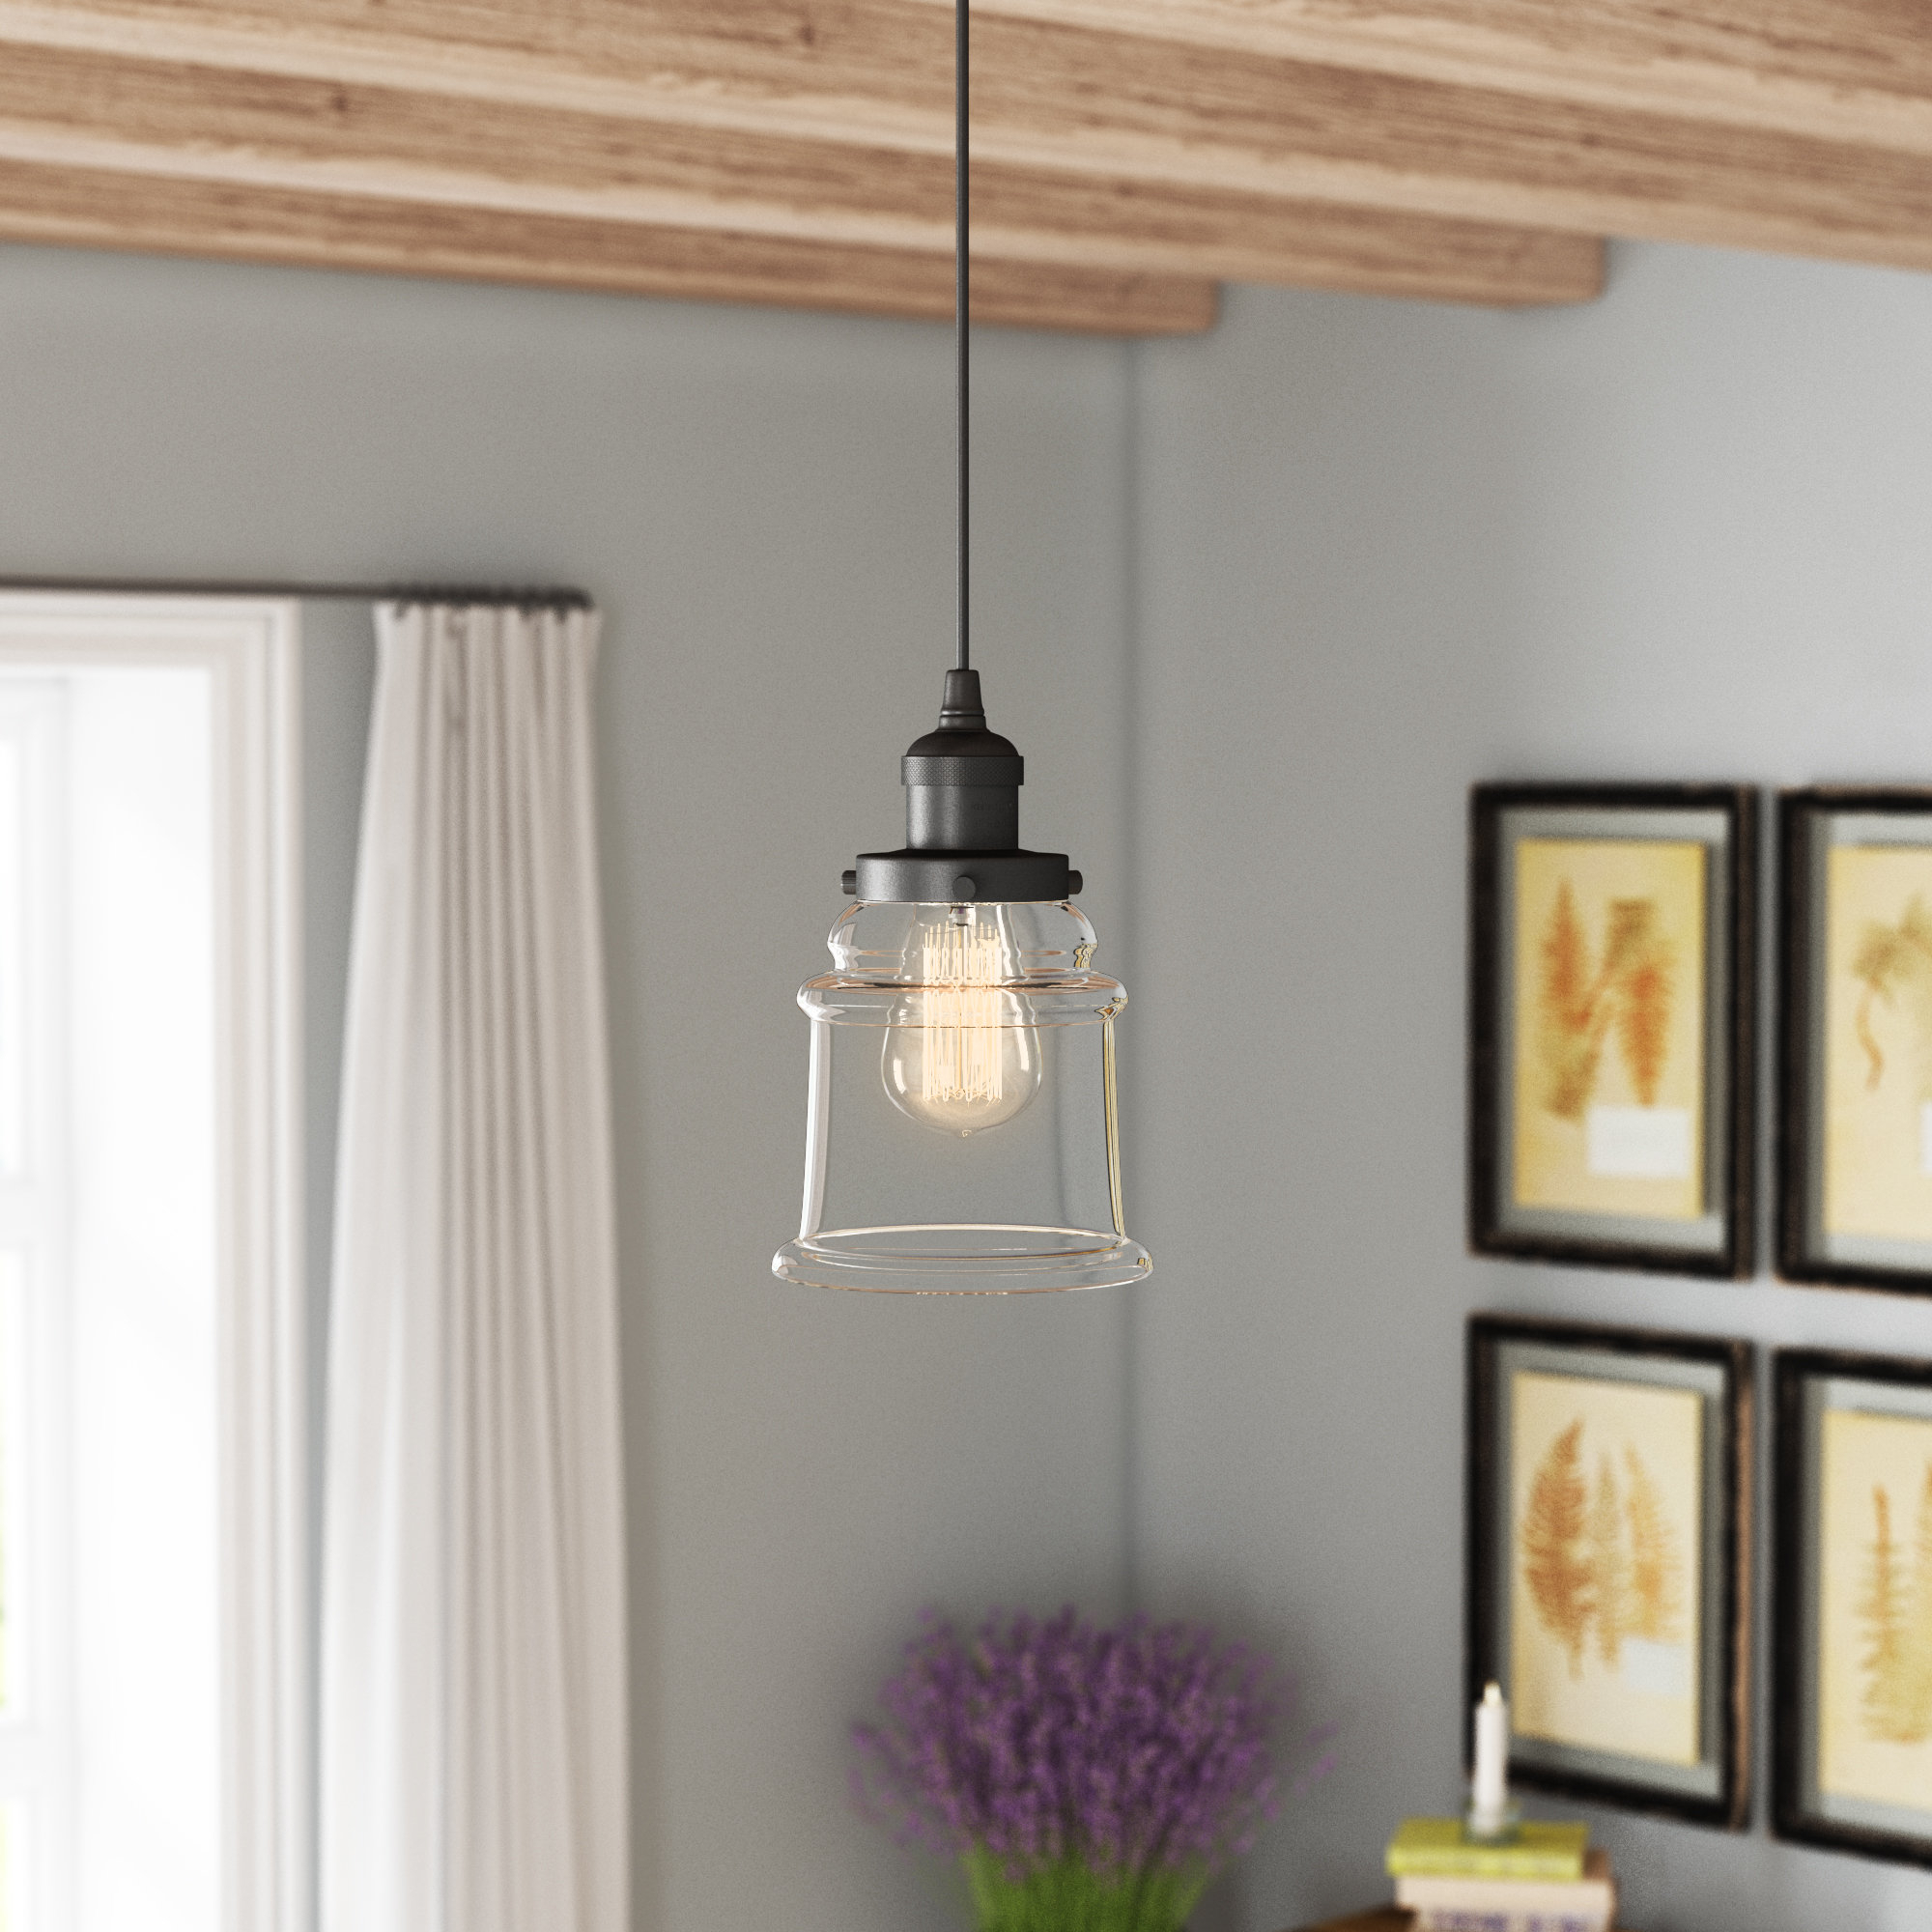 Greeley 1 Light Single Bell Pendant Pertaining To 2019 Sue 1 Light Single Jar Pendants (View 6 of 20)